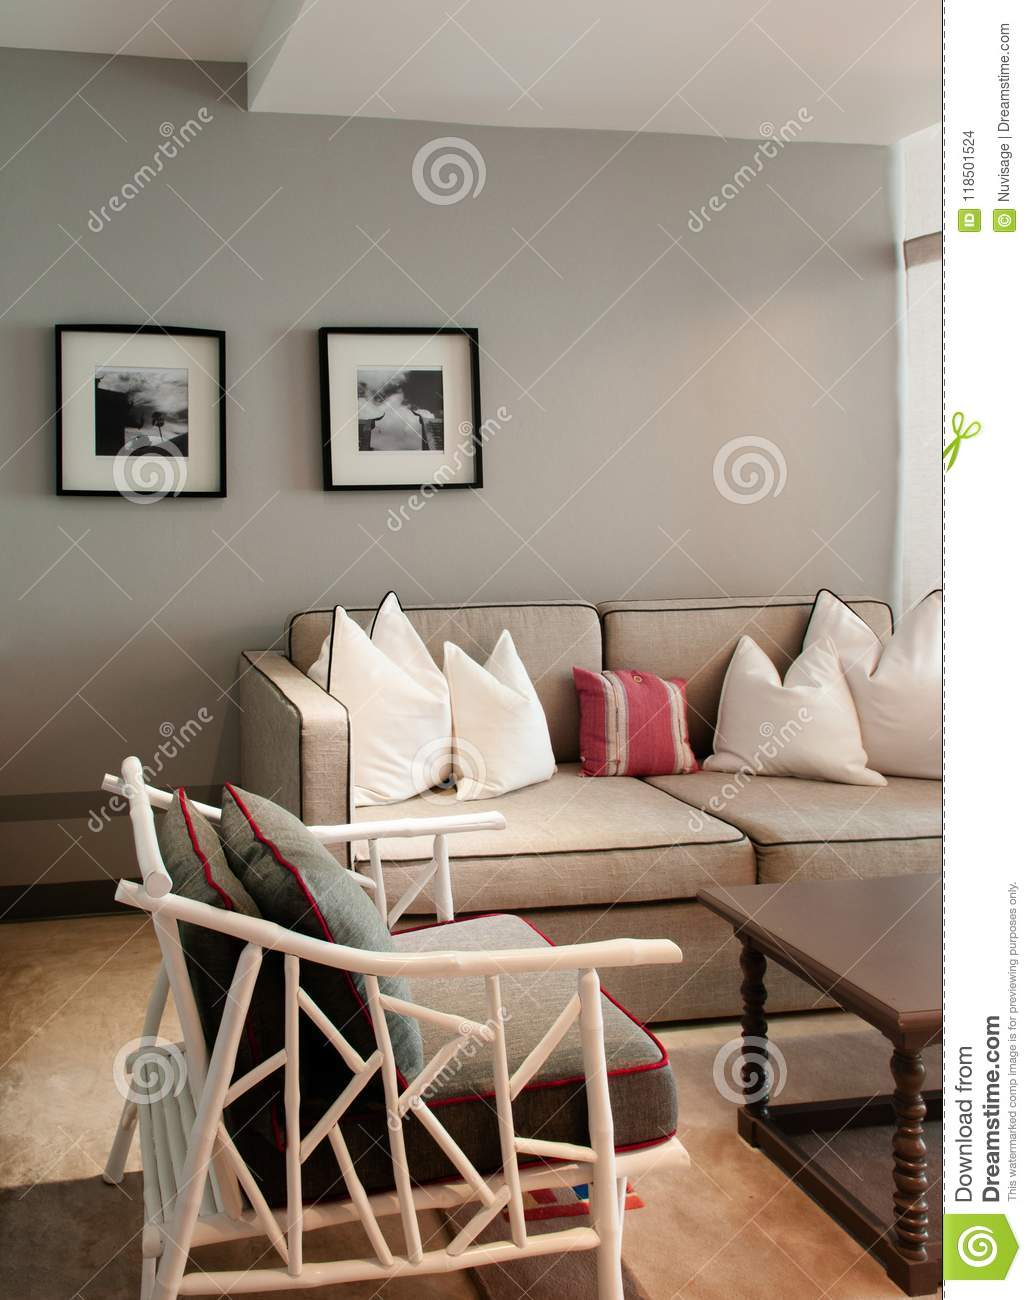 Contemporary Colonial Style Living Room With Well Design Furnitures Editorial Stock Image Image Of Chair Pillow 118501524